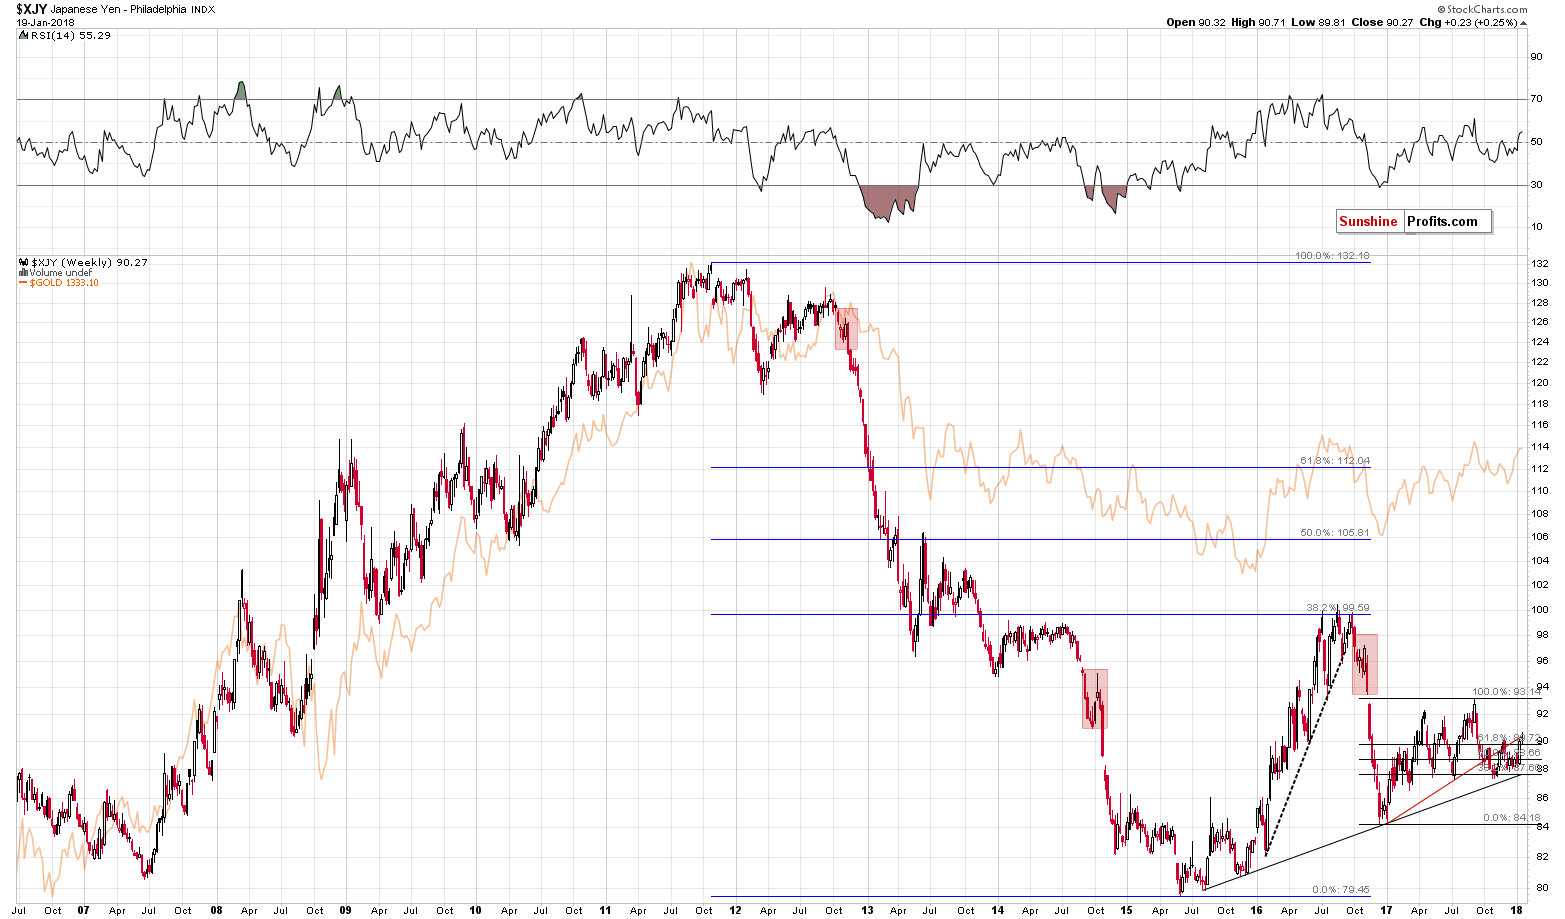 XJY - Japanese Yen and Gold